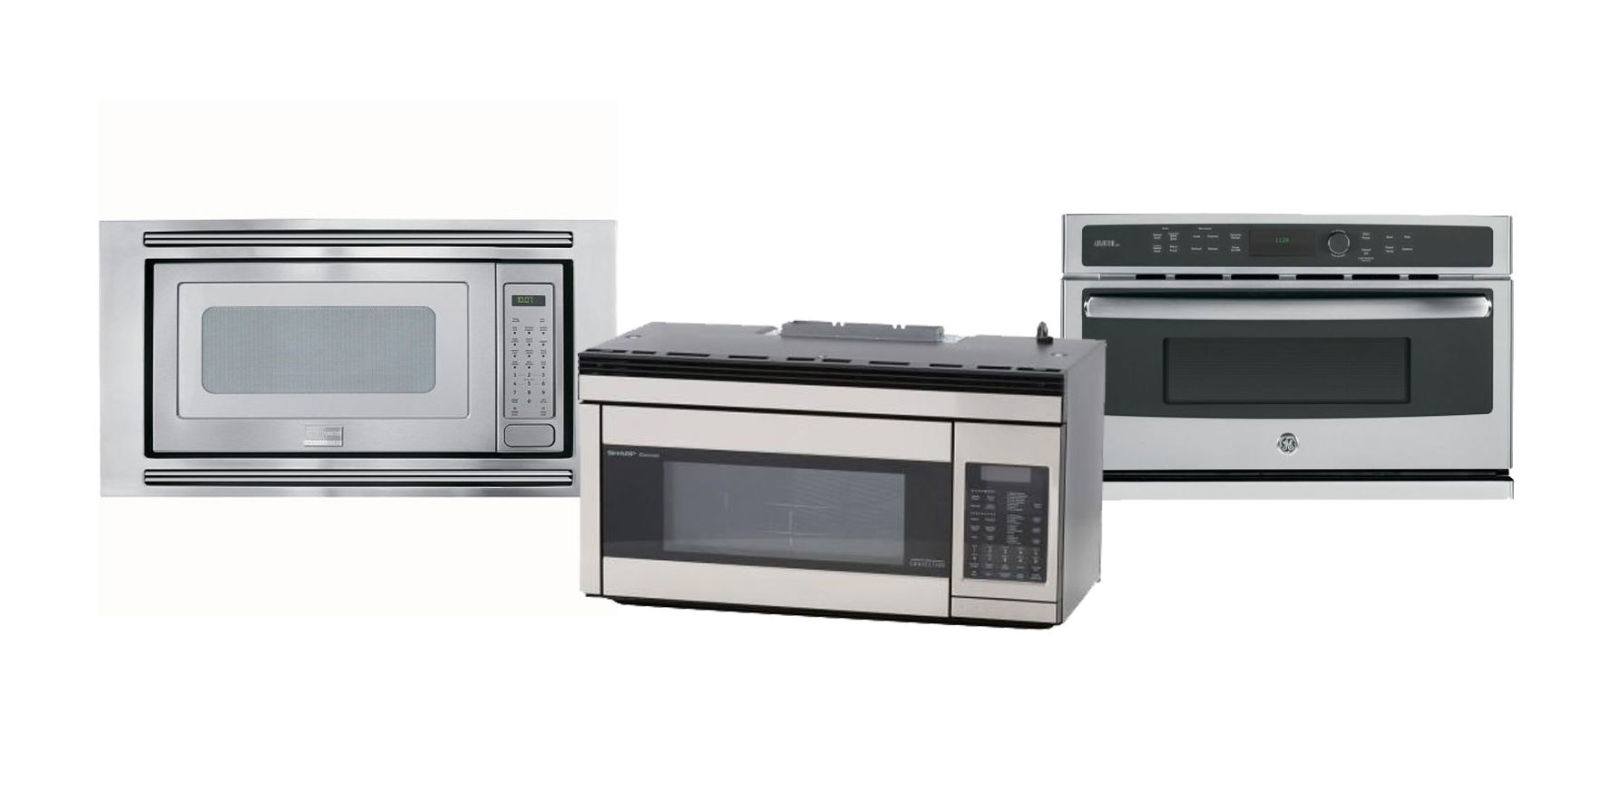 Old fashioned microwave oven 12